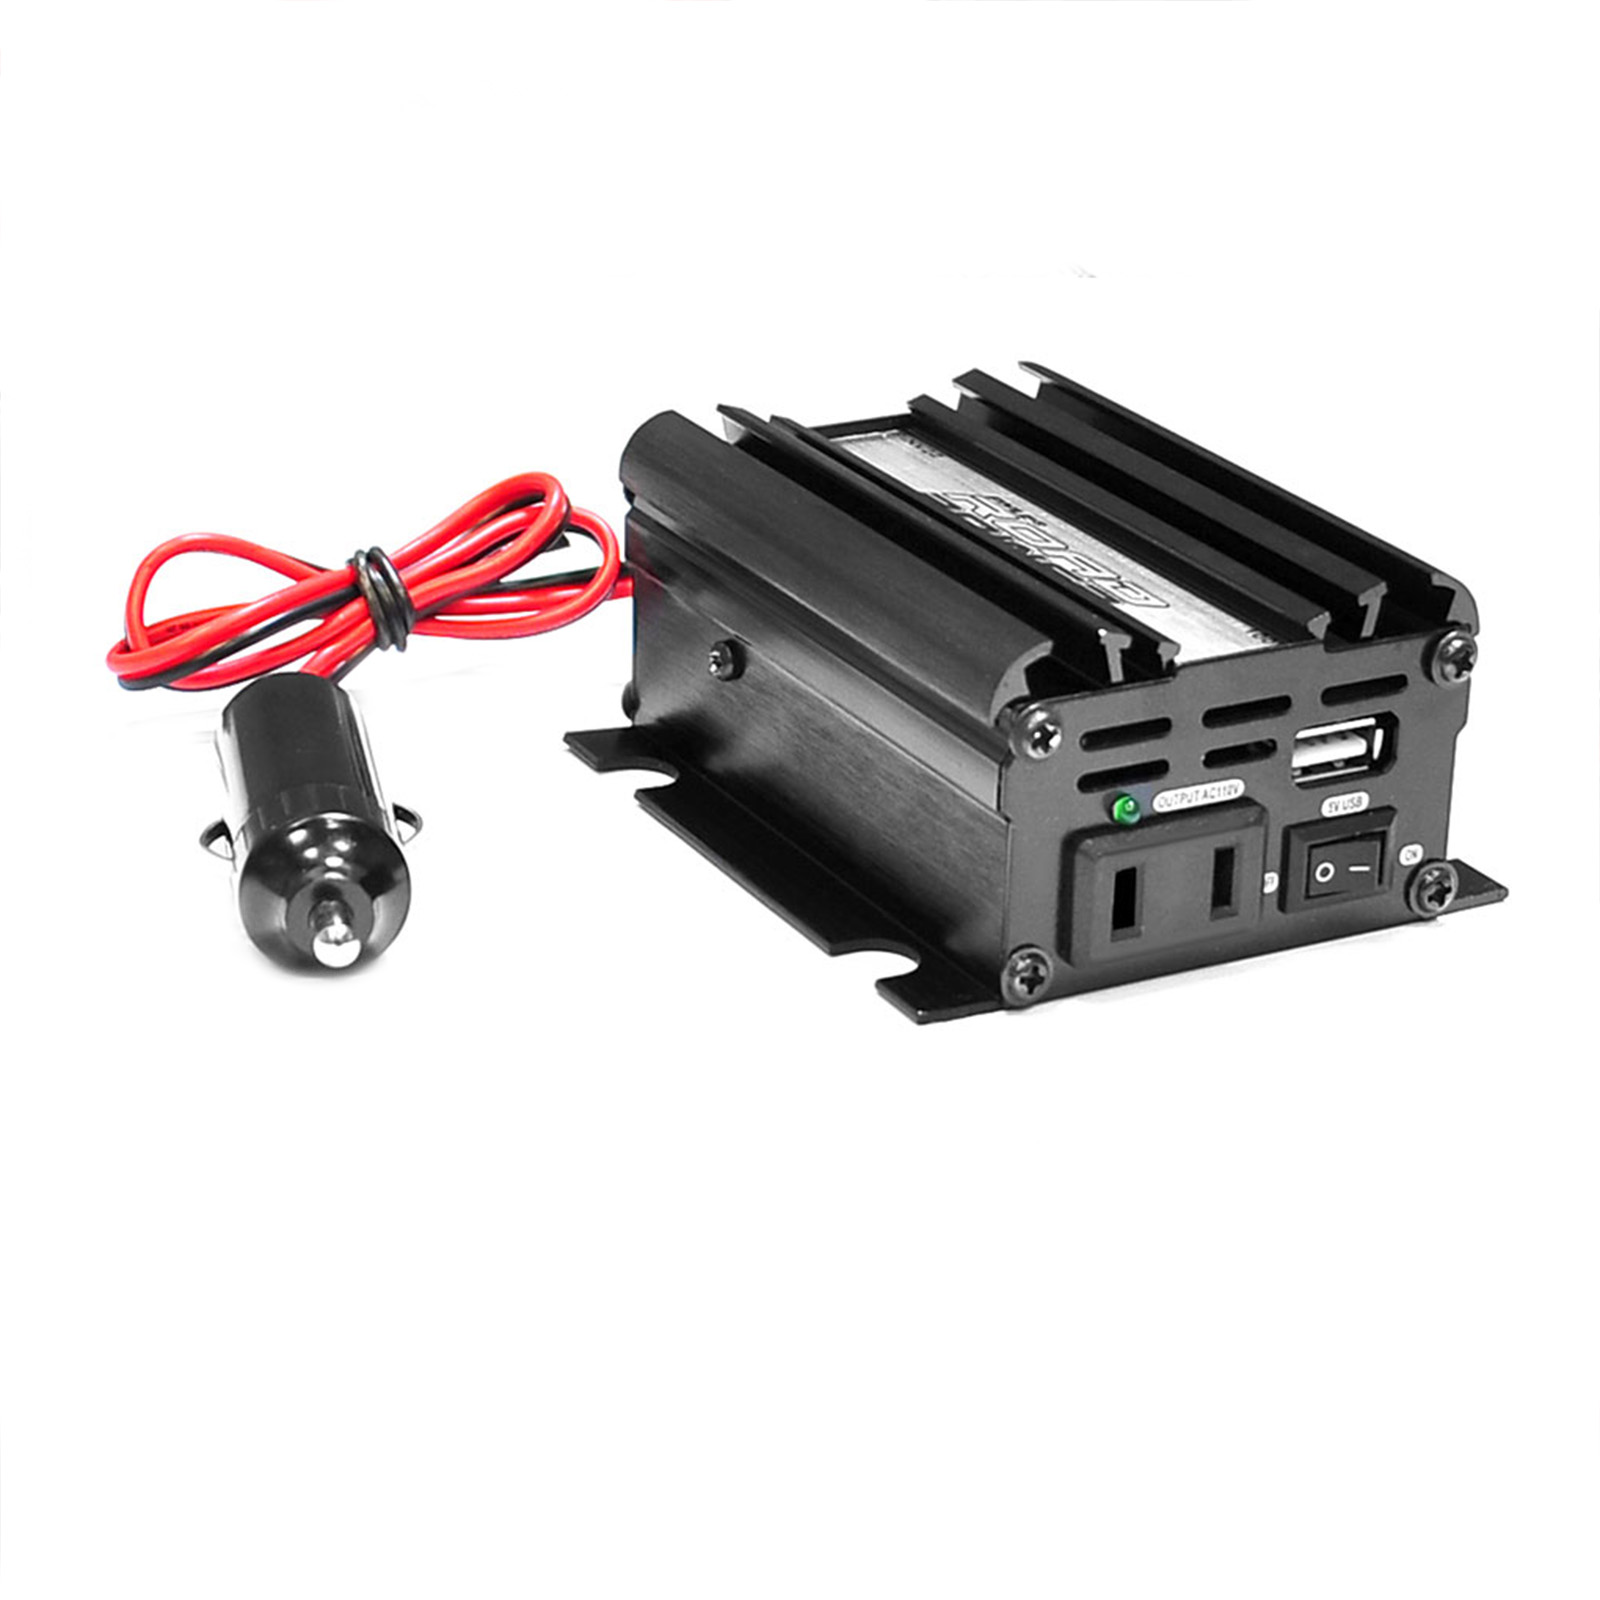 Pyle Plug in Car 100 Watt 12v DC to 115 Volt AC Power Inverter